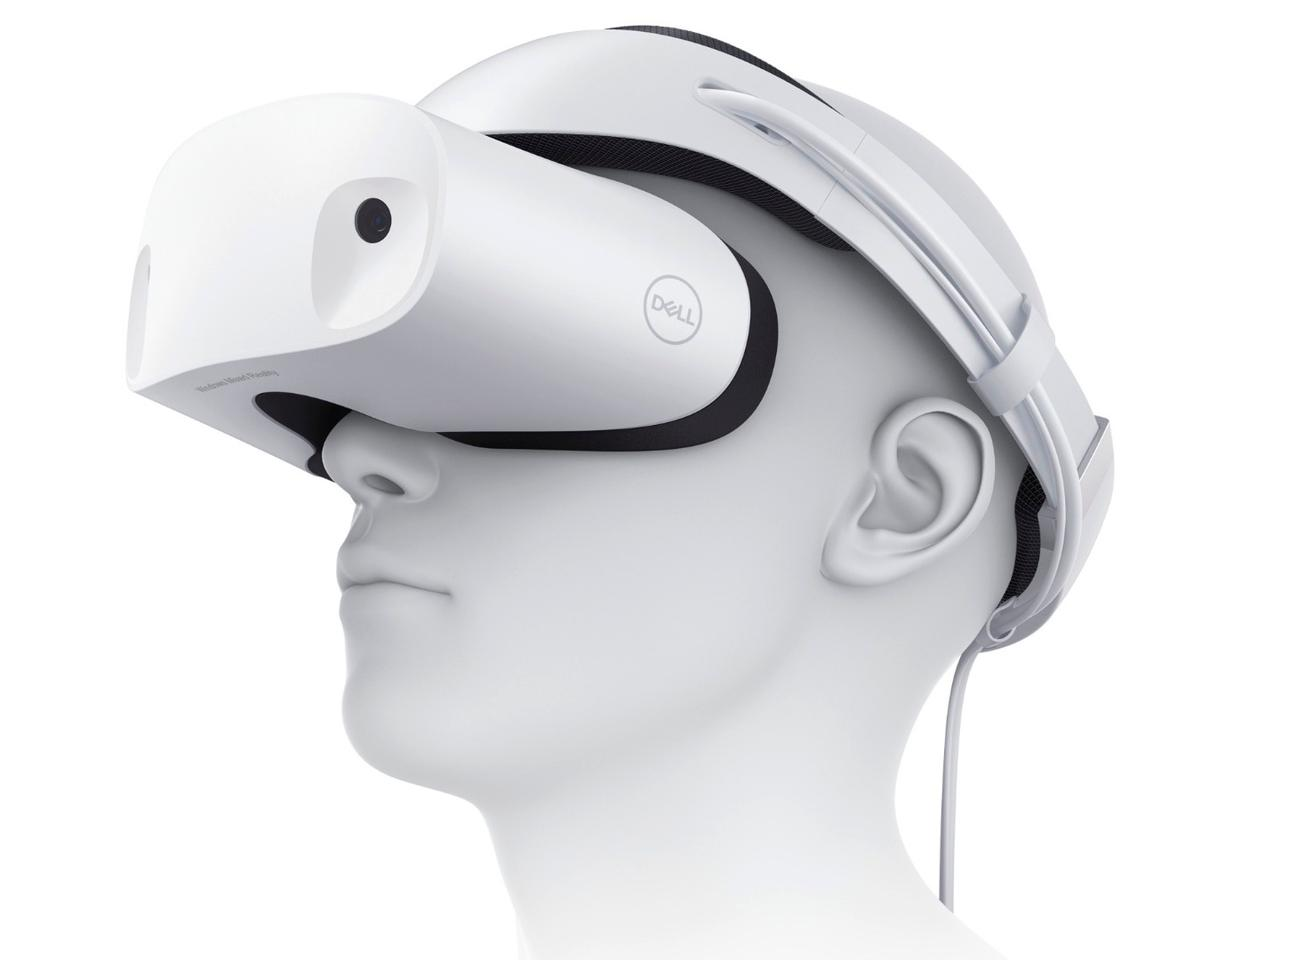 The Dell Visor has been designed for comfort, with extra cushioning, weight balancing to keep the pressure off the wearer's nose, a thumbwheel to adjust the headband, and a flip-up eyepiece